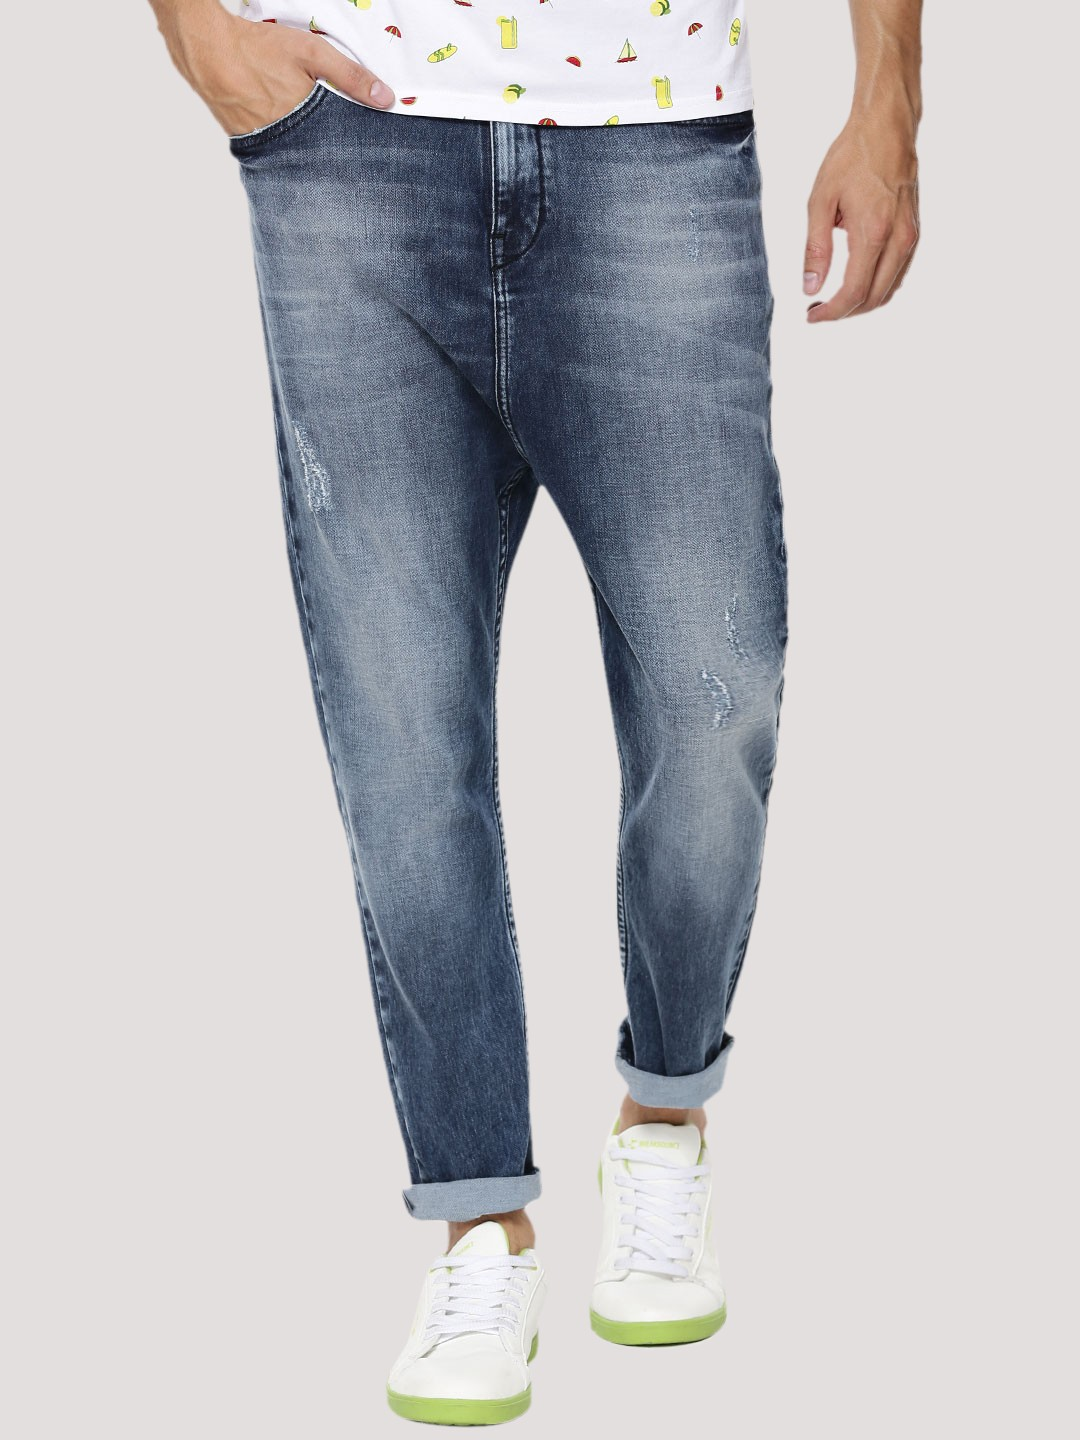 Discover men's jeans from ASOS. Hundreds of different jean styles, including skinny jeans, straight leg jeans, bootcut and coloured denim. ASOS DESIGN drop crotch jeans in vintage light wash blue with heavy rips. $ ASOS DESIGN super skinny jeans in black. $ ASOS DESIGN super skinny in white with knee rips.